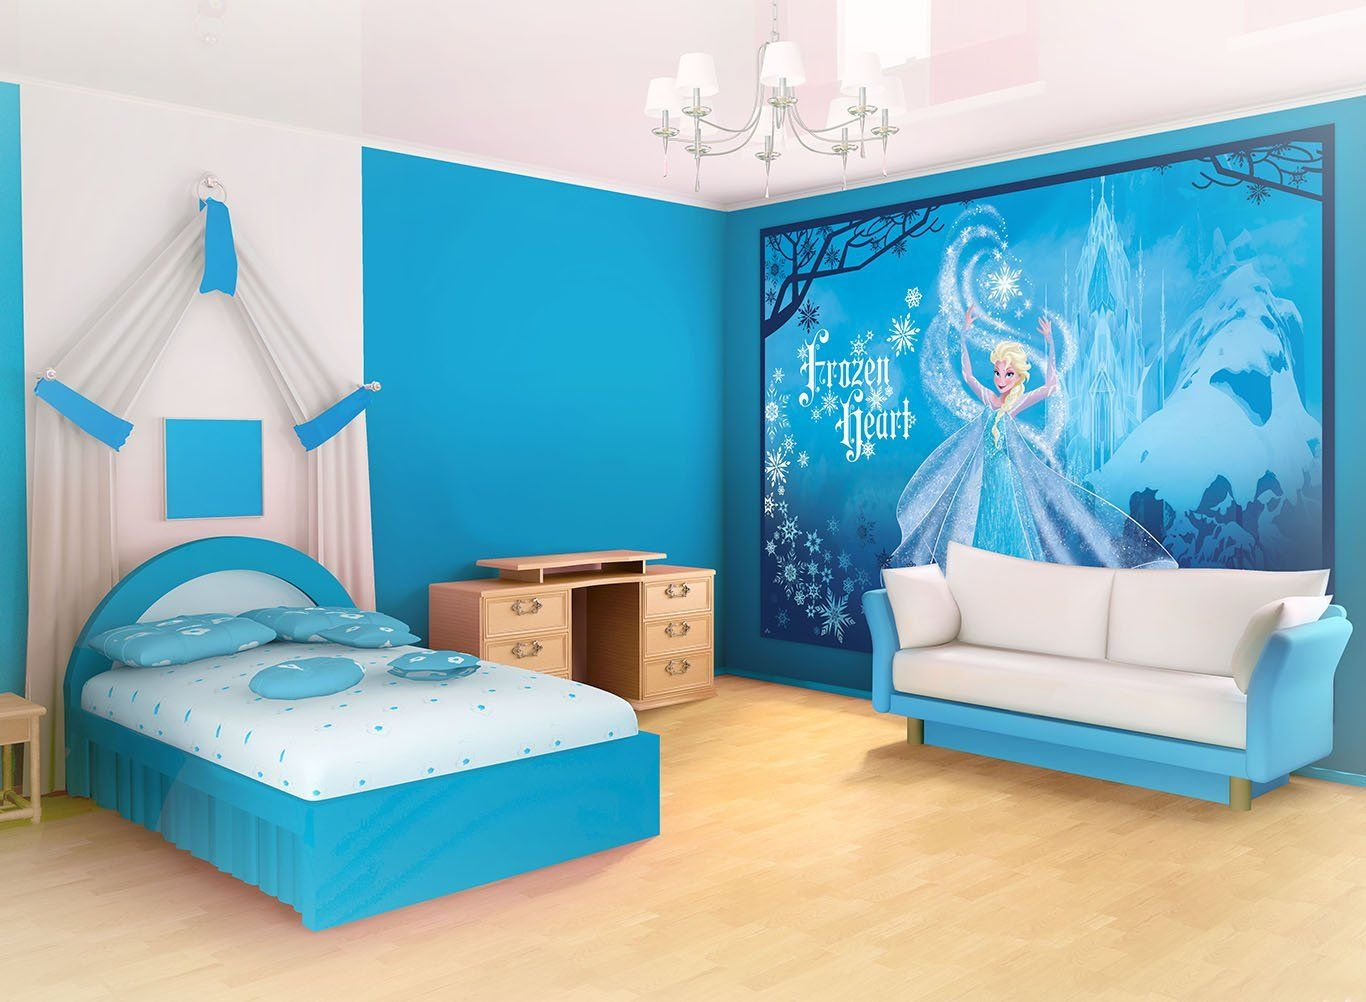 fototapete fototapeten tapete tapeten disney eiskOnigin elsa 832 wall murals wallpaper coverings decoration non woven home anna elsa frozen